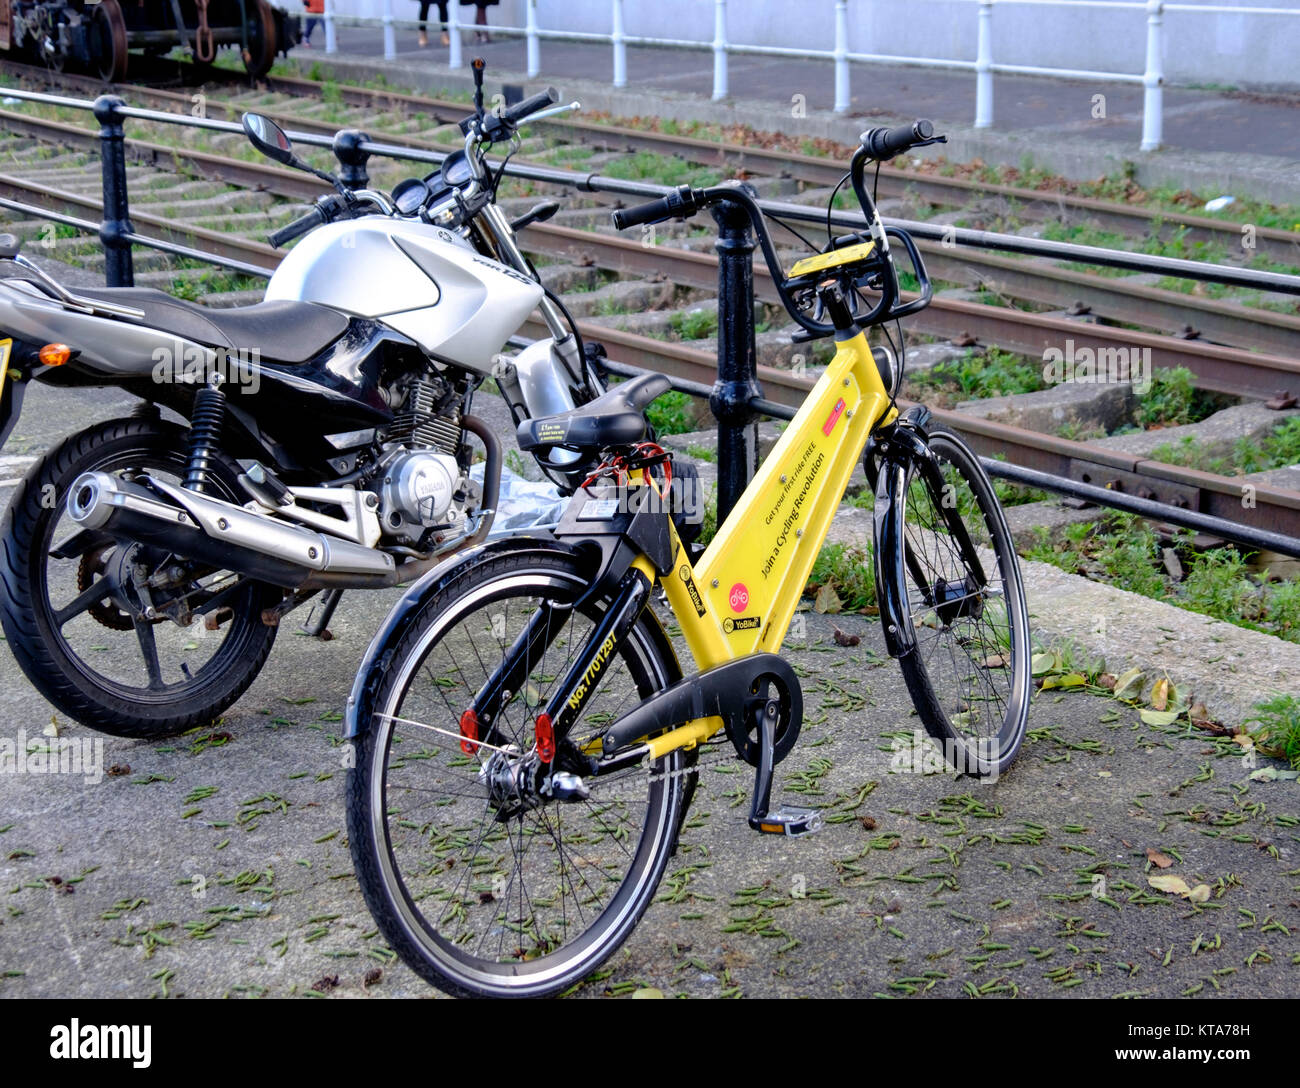 Small motor bike stock photos small motor bike stock for Little motors for bicycles